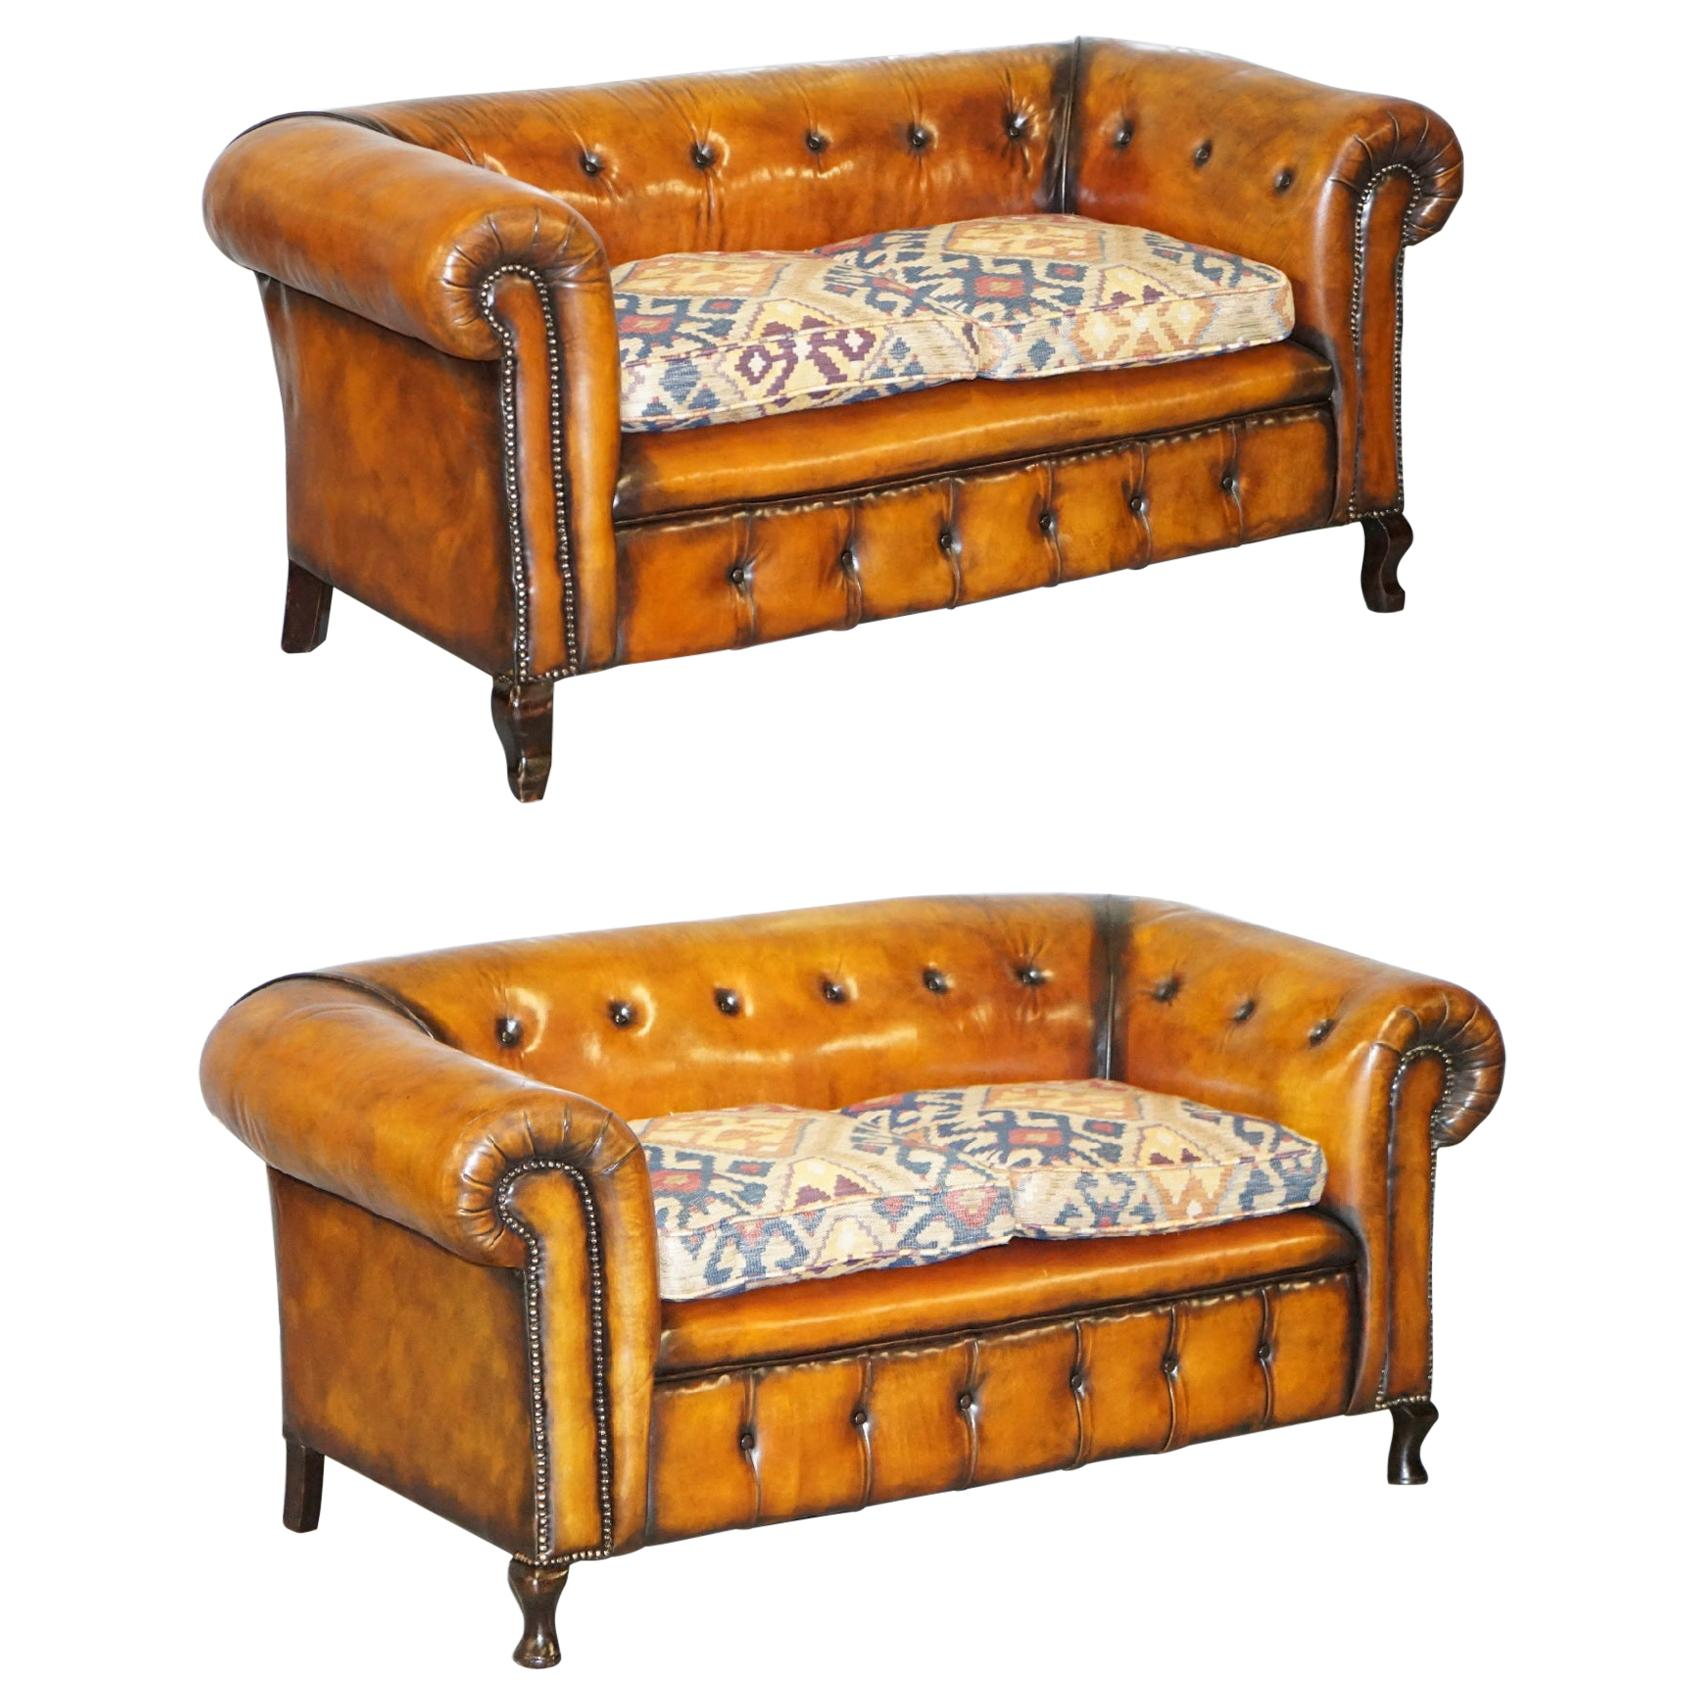 Pair of Restored Victorian Gentleman Club Chesterfield Leather Sofas Kilim Seats